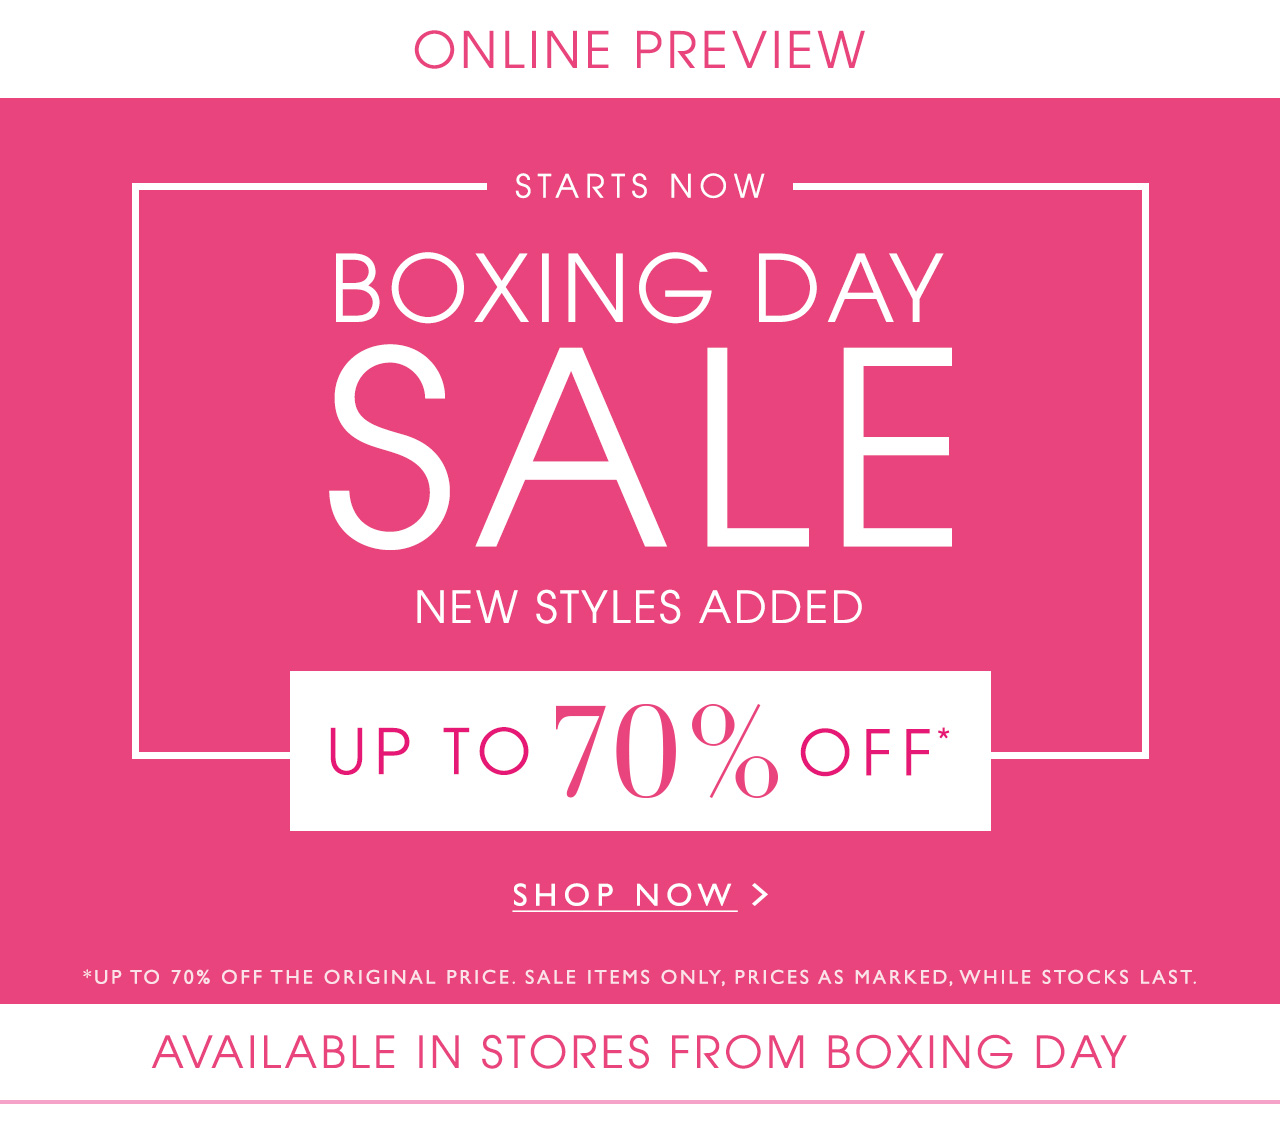 Online Preview Boxing Day Sale Starts Now Up To 70 Off Shop